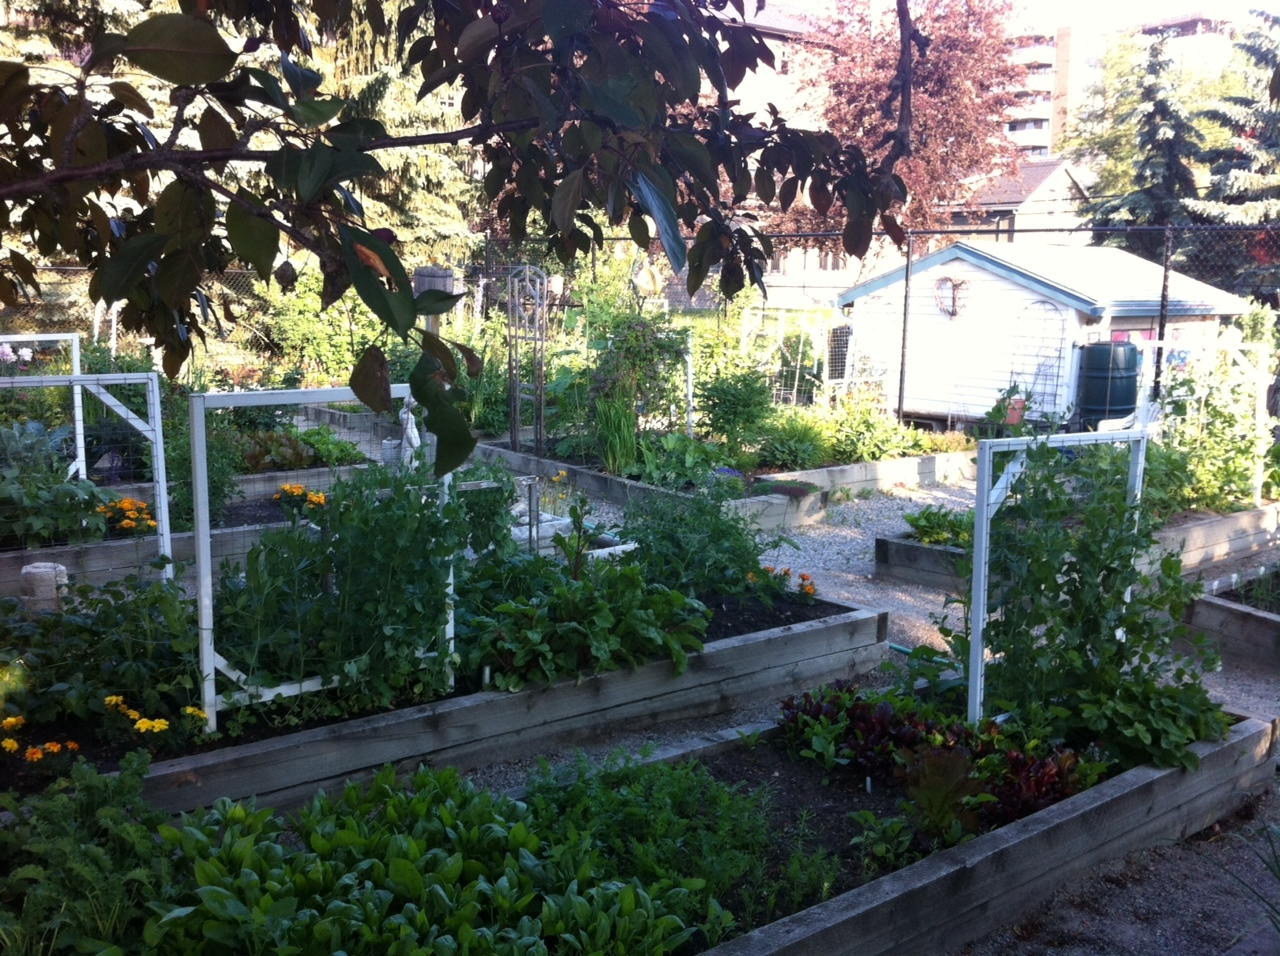 The park includes a wonderful community garden.